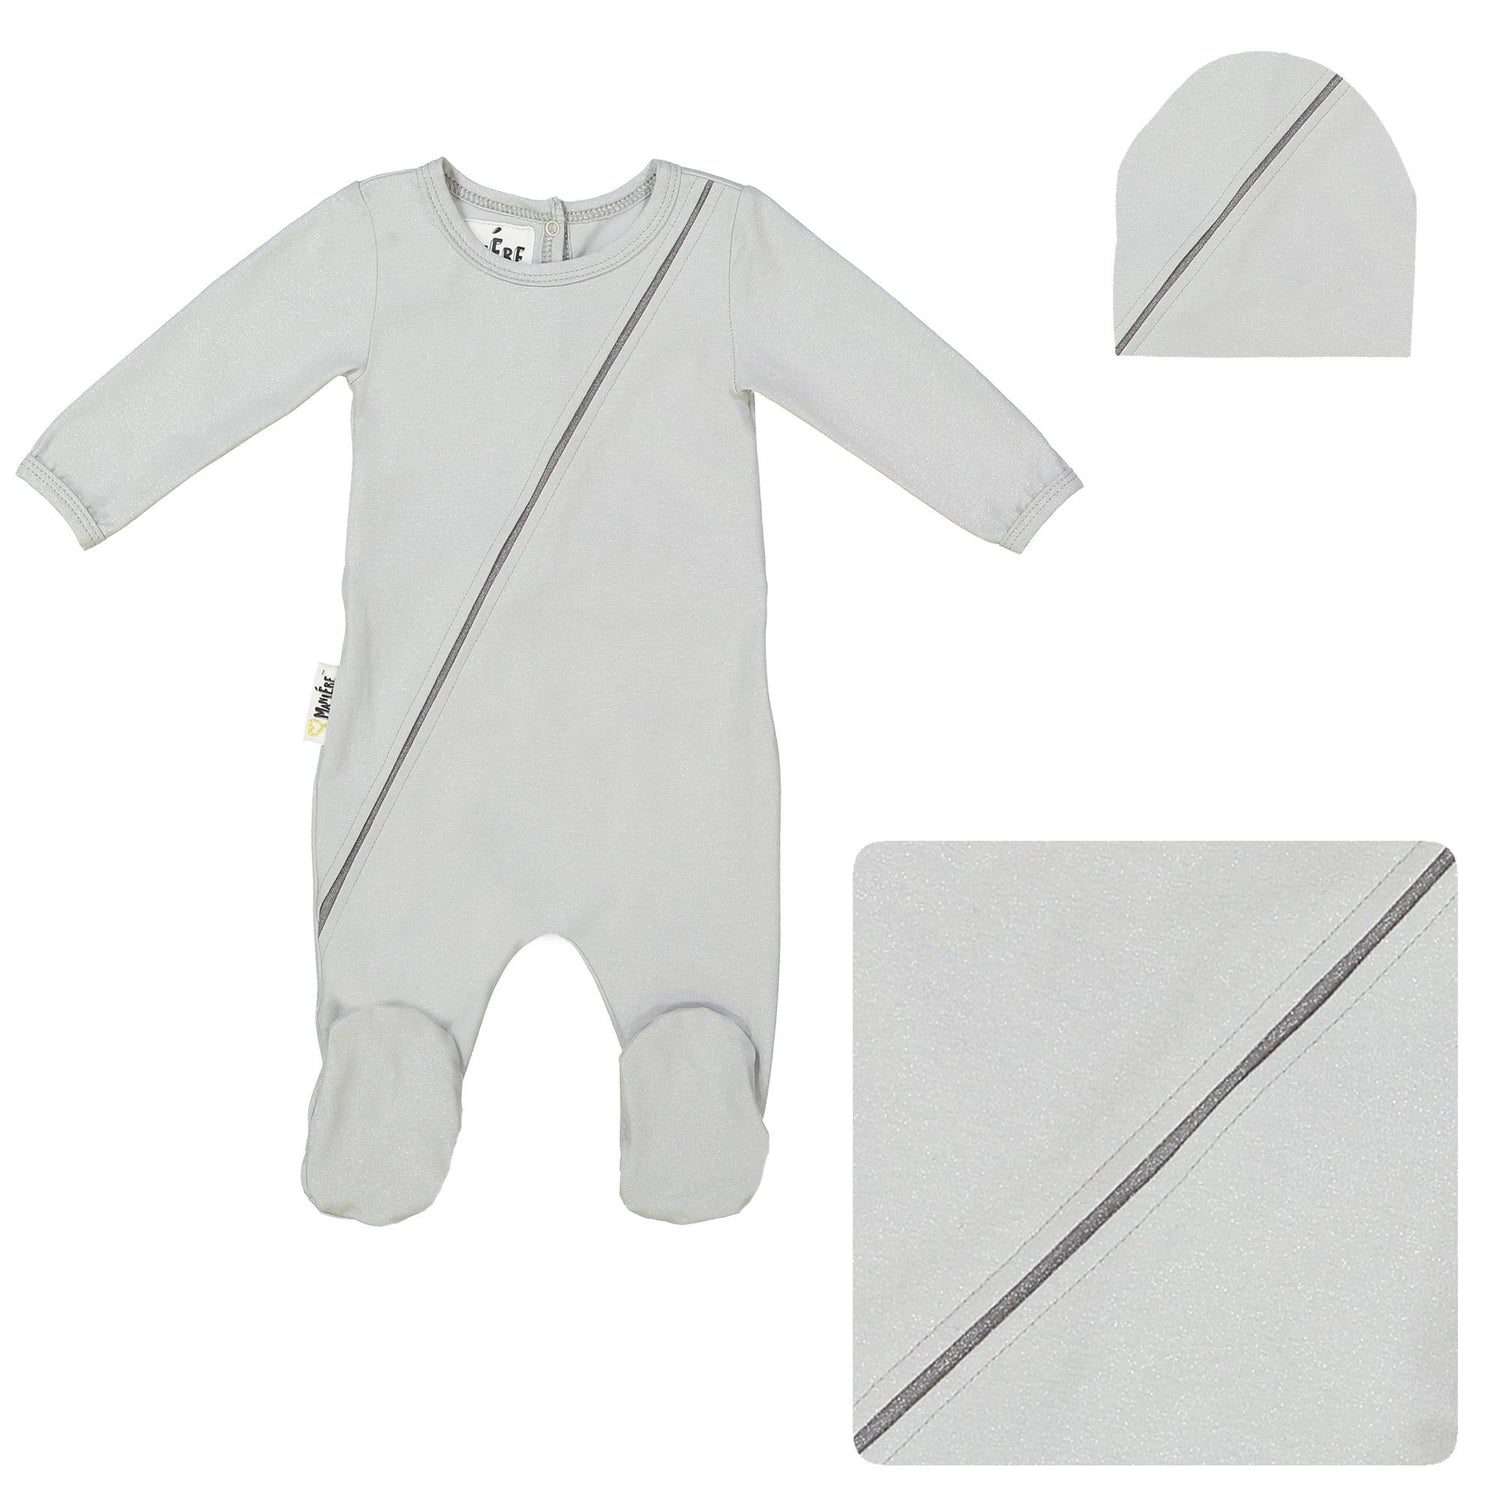 Slot Seam Footie Set Maniere Accessories Silver 3 Month